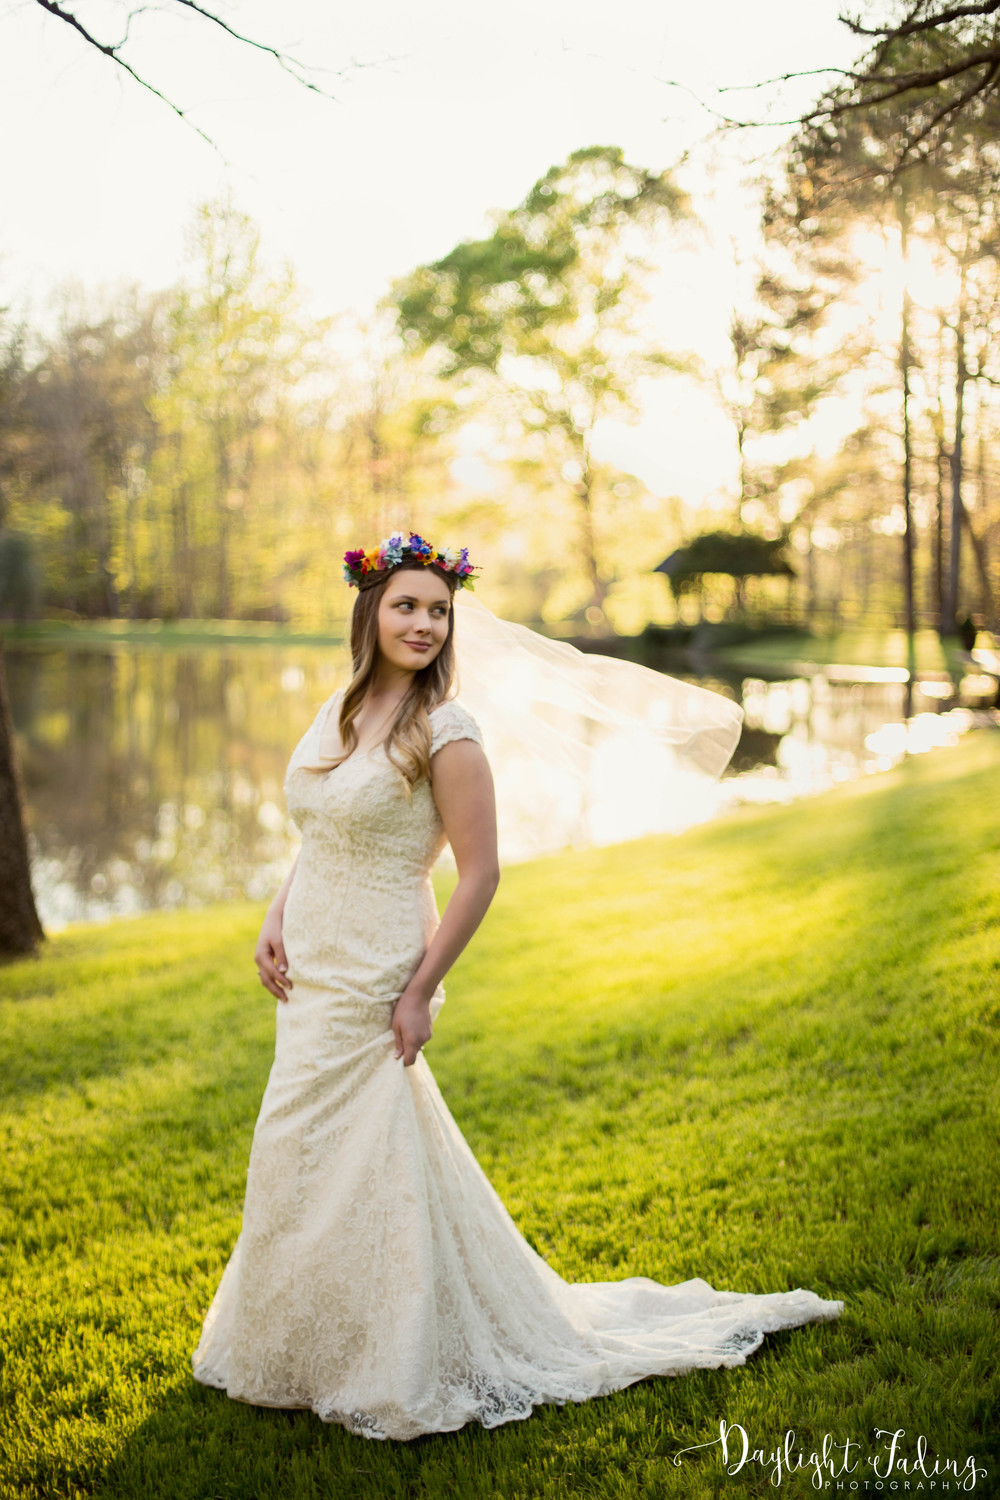 Bridal Wedding Photographer Creekwood Gardens Simsboro Ruston Louisiana - daylightfadingphotography.com